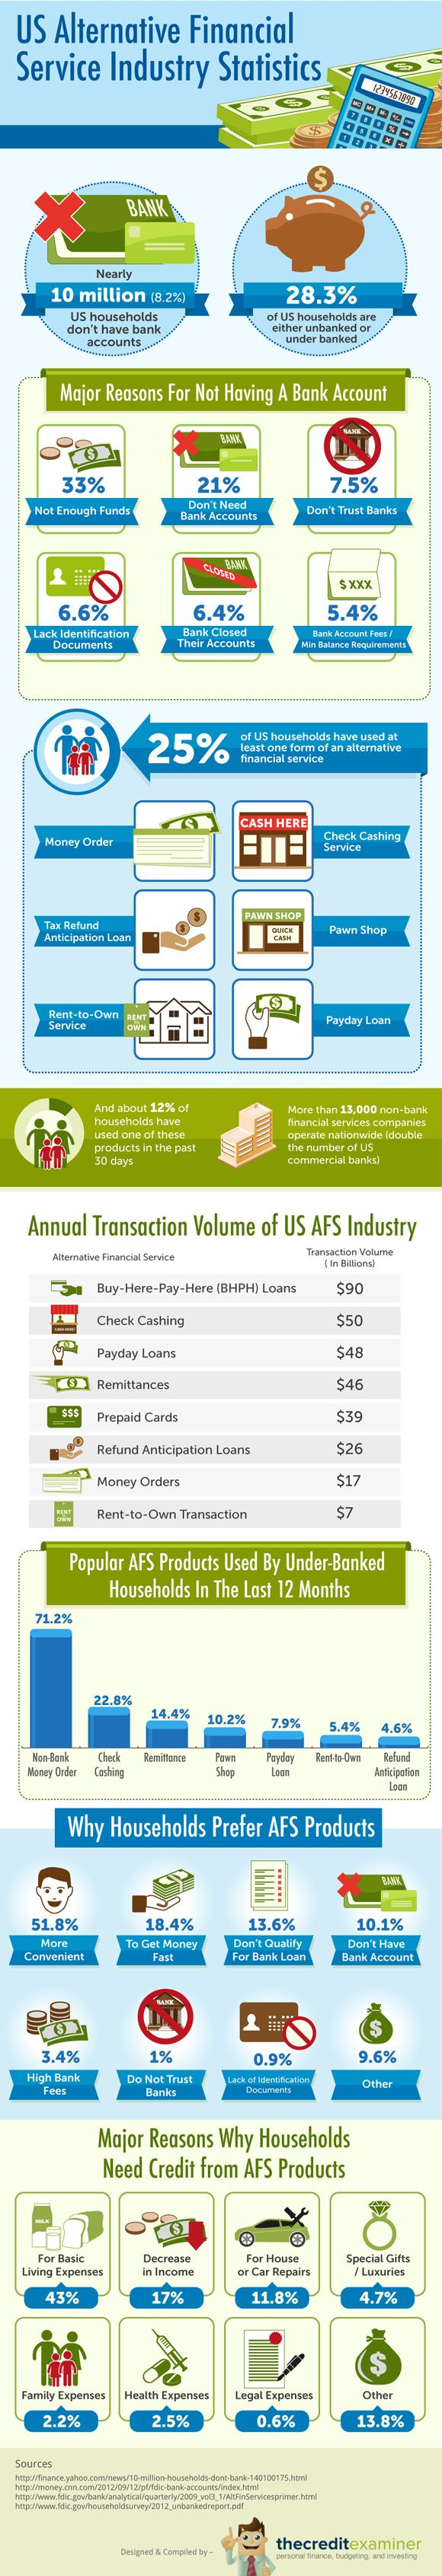 How Big Is Alternative Financial Services Industry? - The infographic, US Alternative Financial Service Industry Statistics, examines some of the common products, why American household participate in the AFS industry, the annual transaction volume within the industry and reasons why households need credit from AFS products.